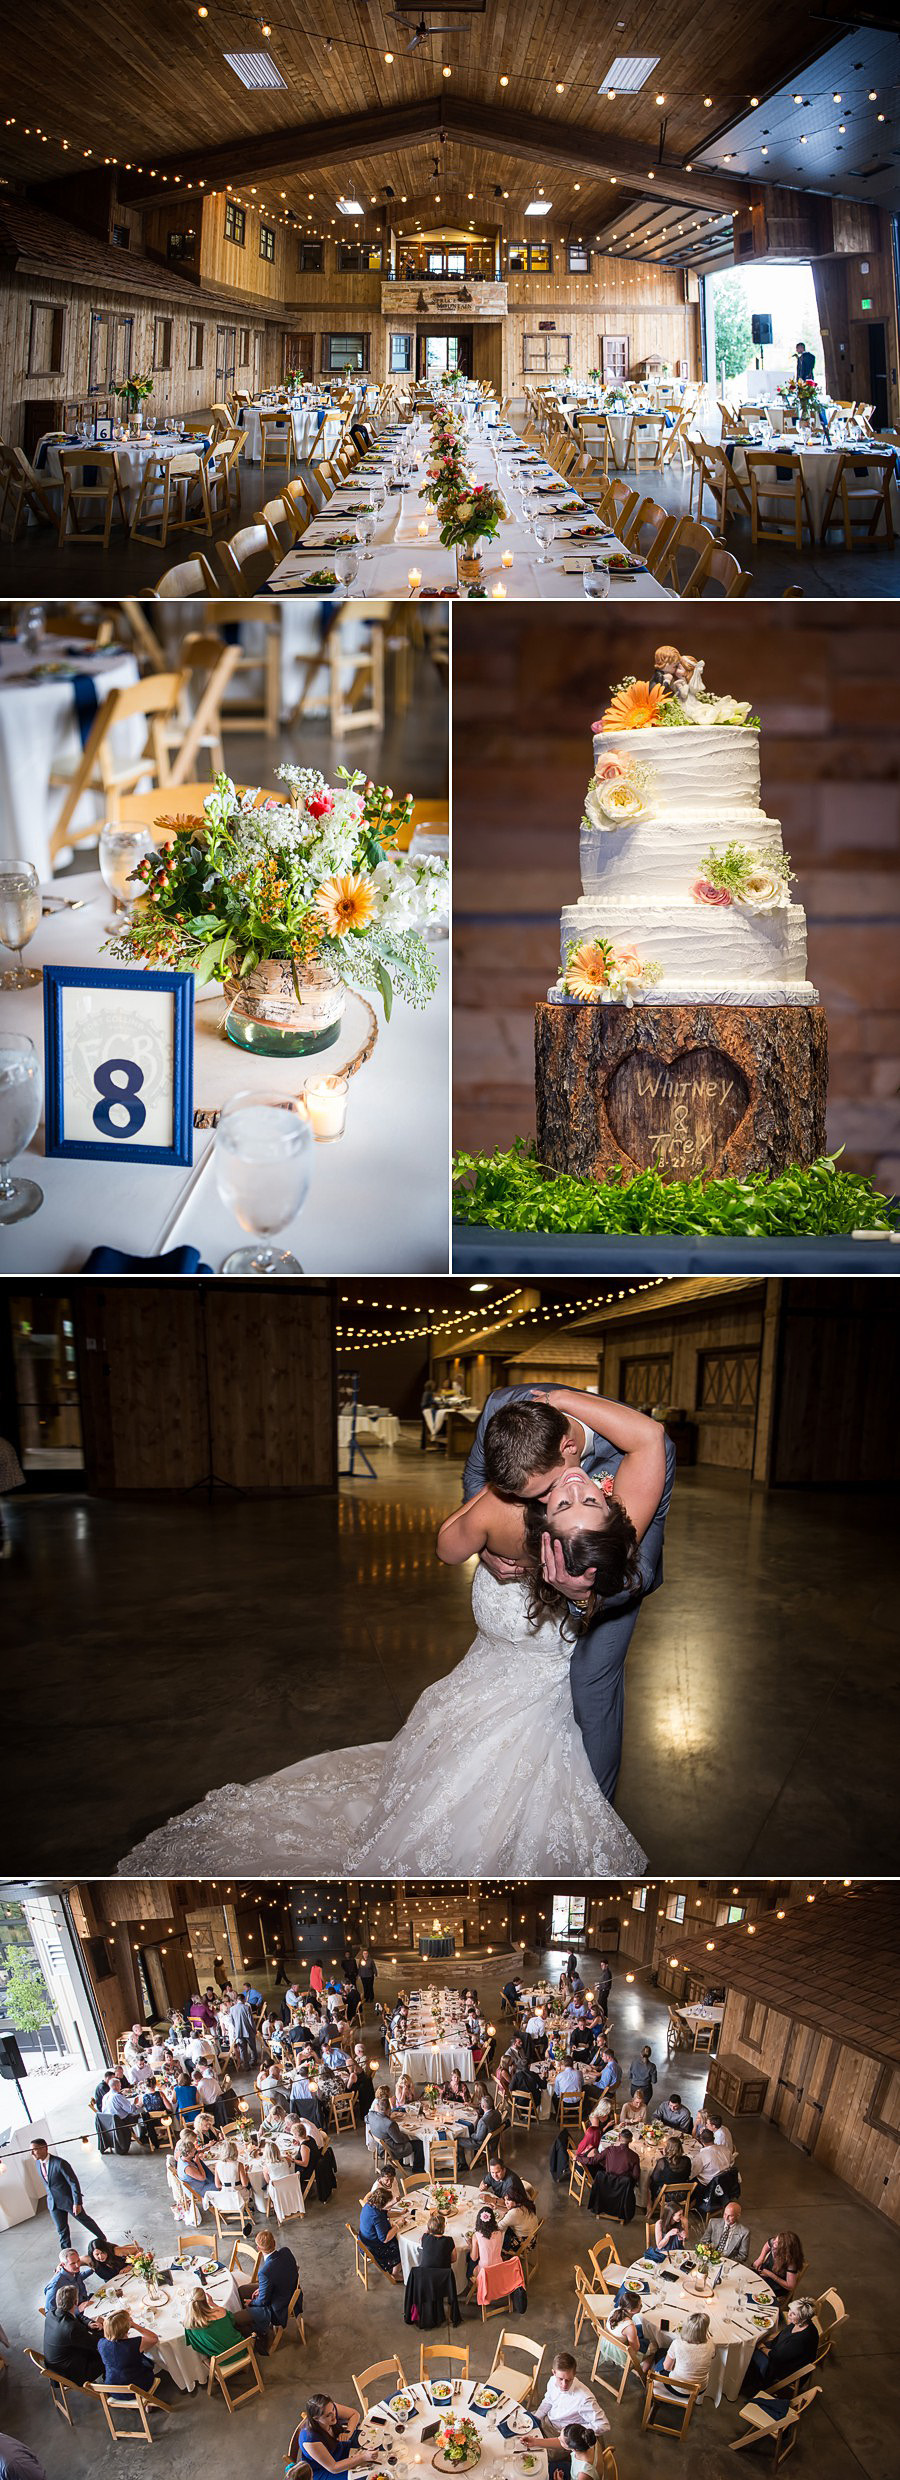 Reception details and entrance in Ponderosa Room at Spruce Mountain Ranch